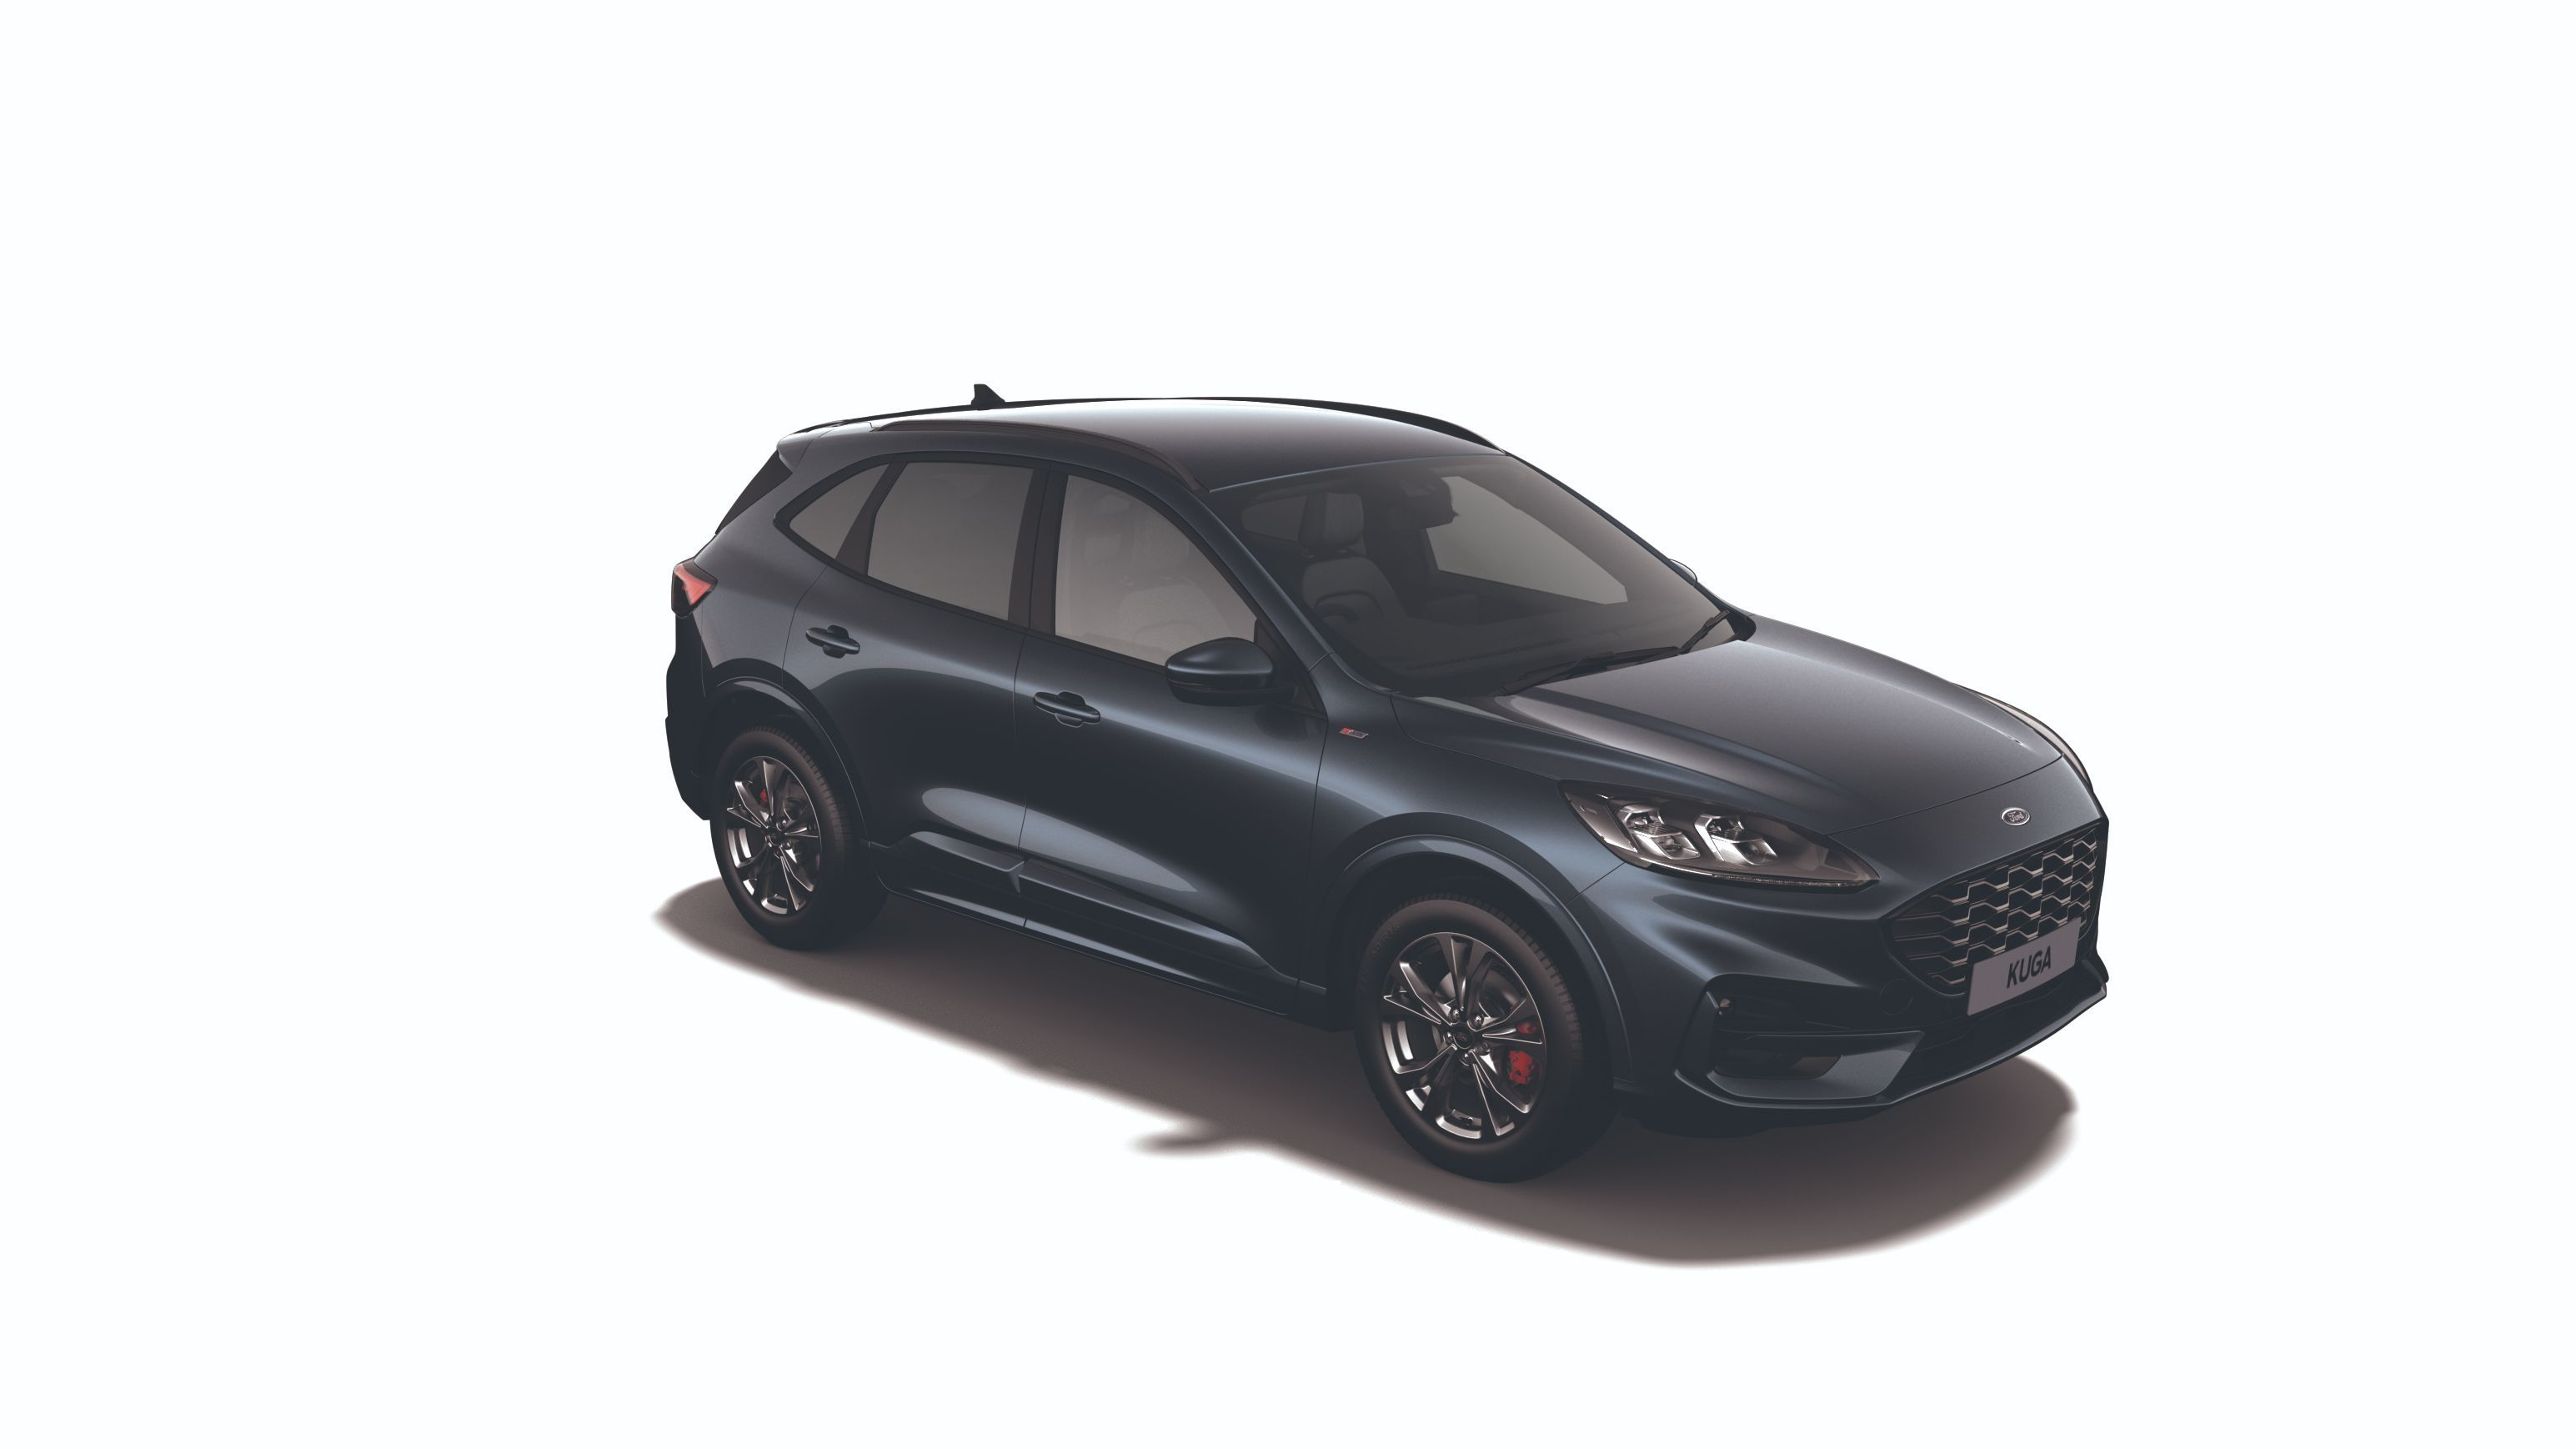 FORD KUGA 2.5 EcoBoost PHEV ST-Line X First Ed 5dr Auto